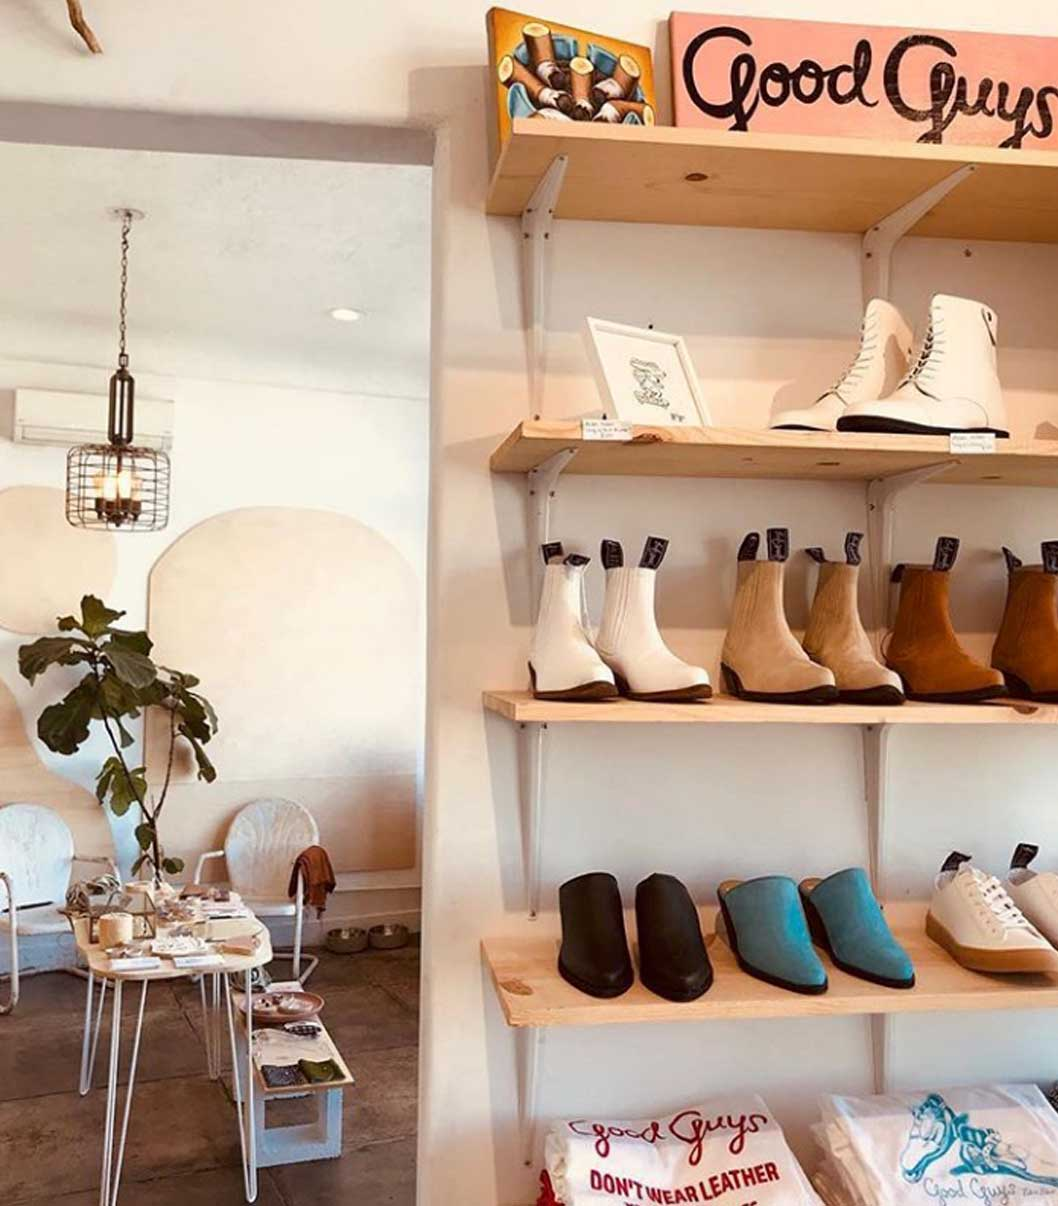 Labels Shoes Paris sustainabel eco shoes first vegan shoes in Paris Good guys dont wear leather